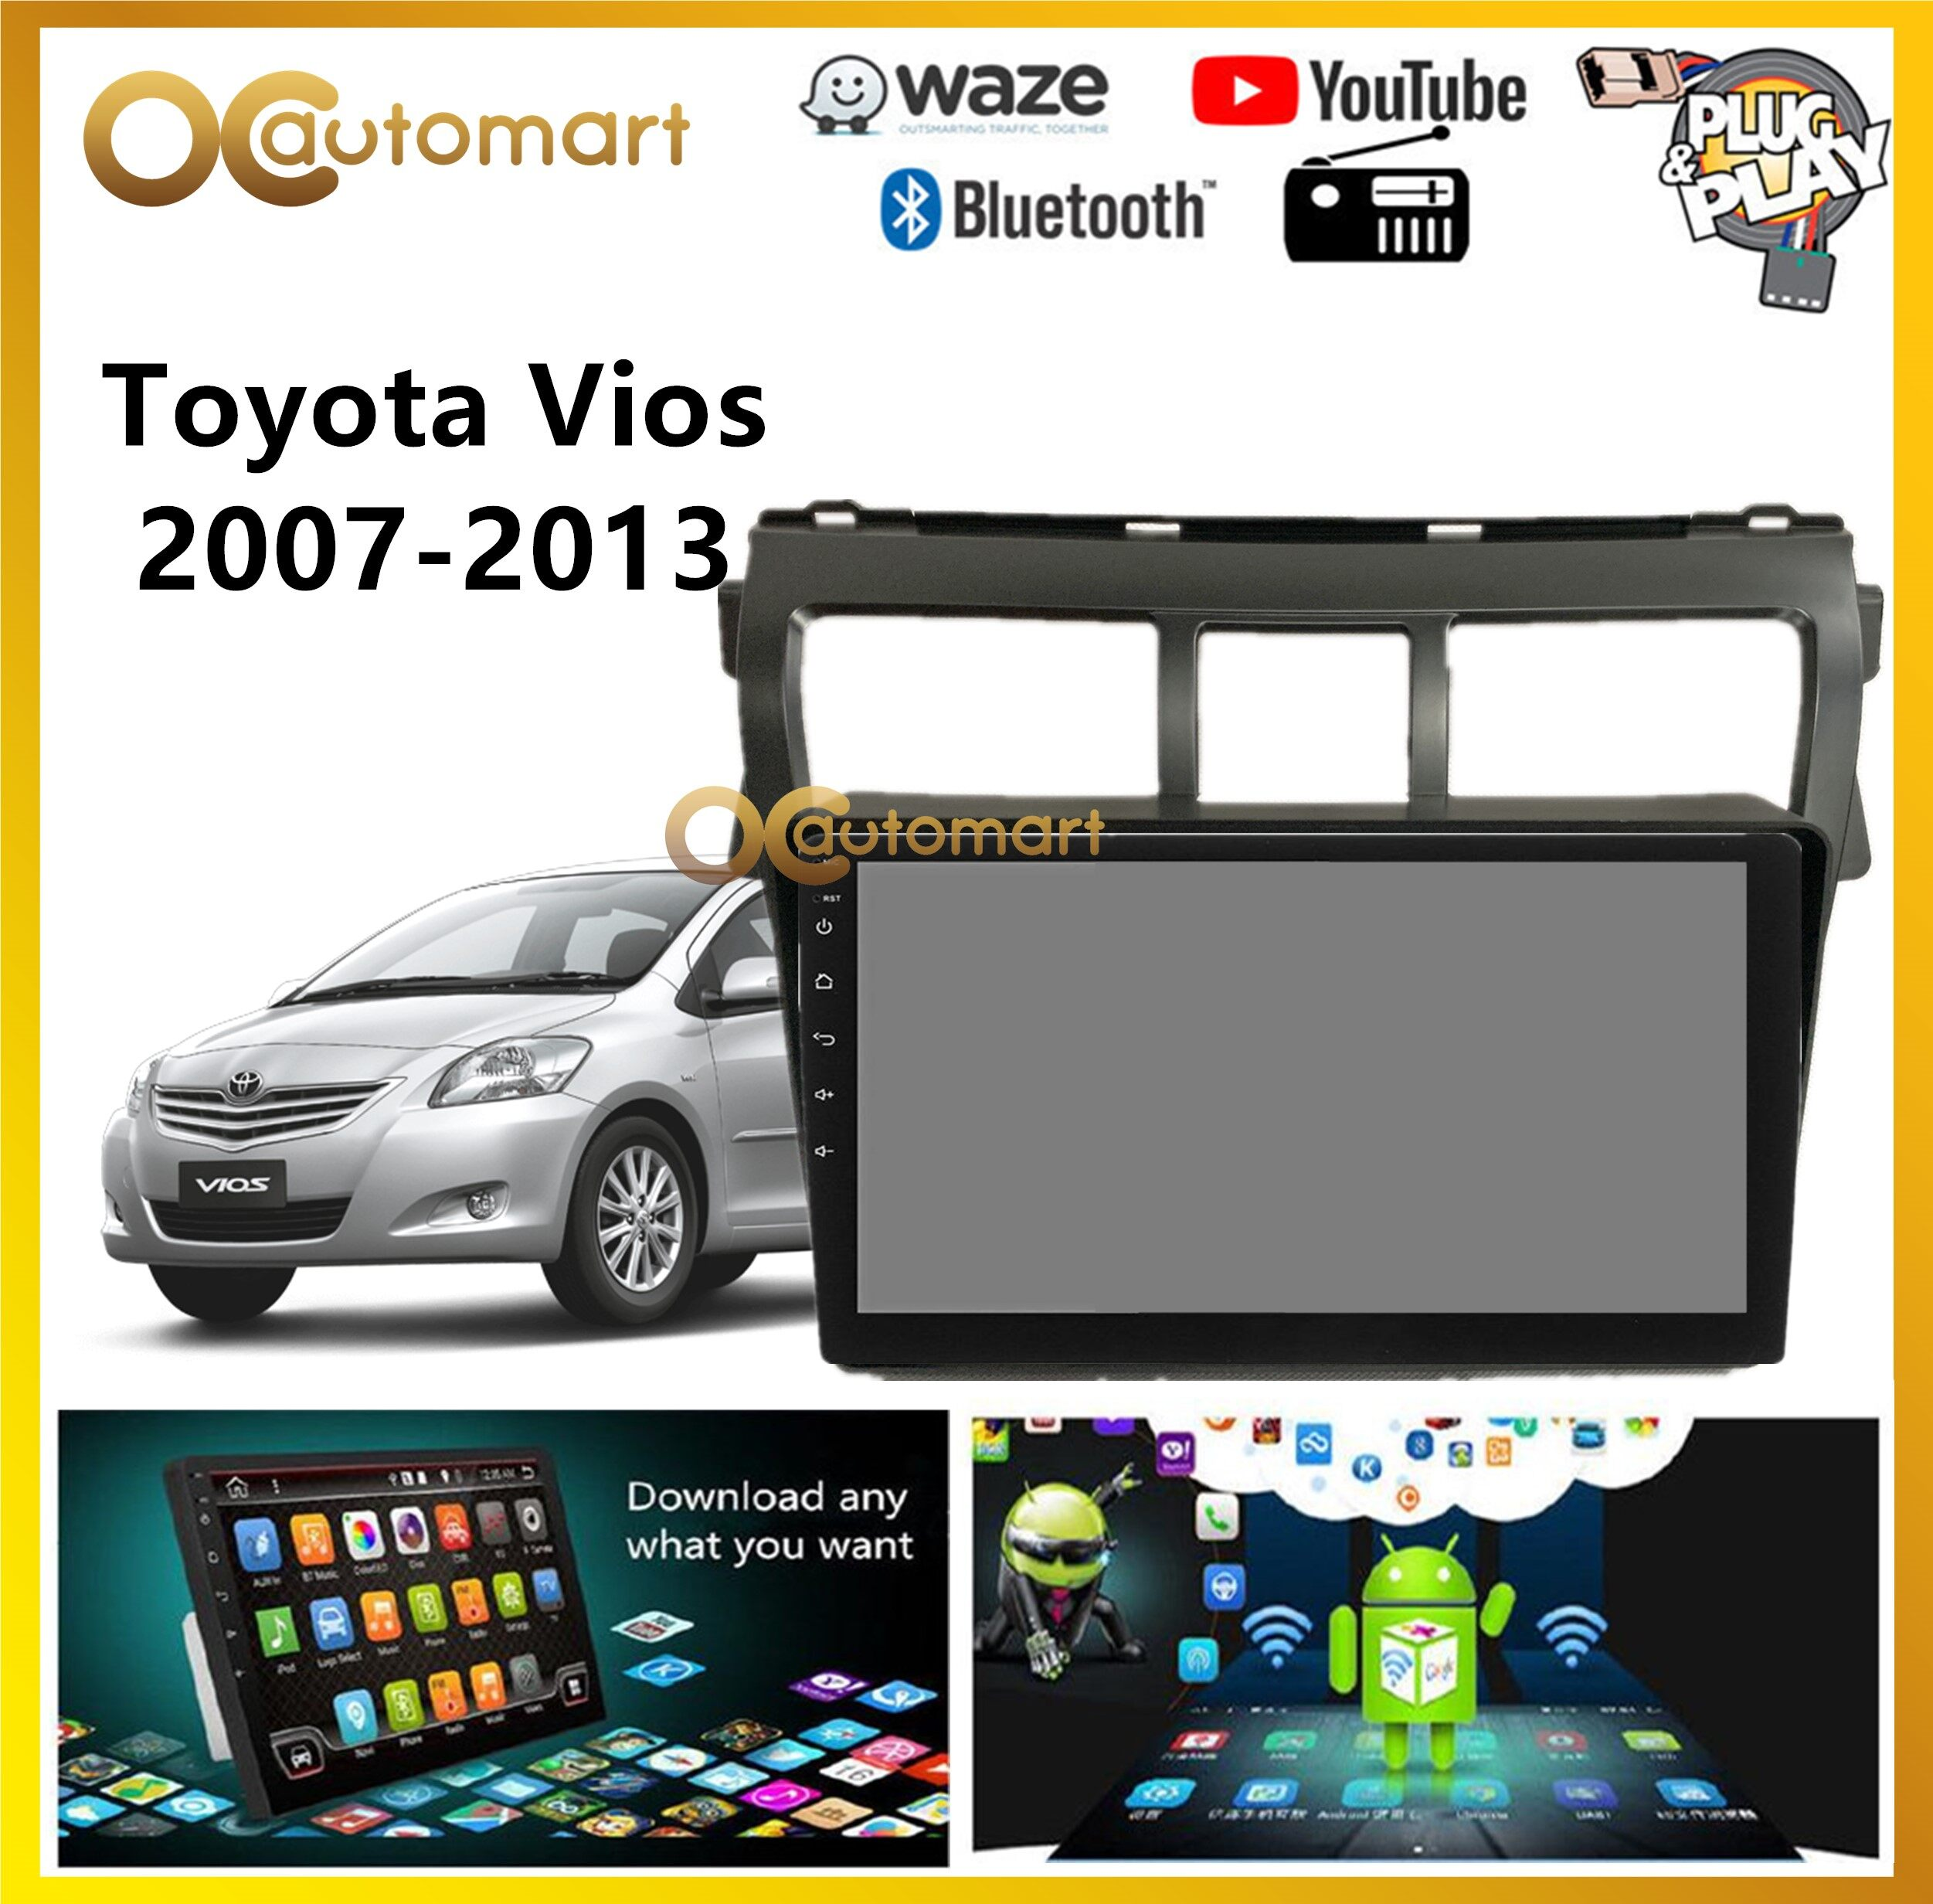 Toyota Vios 2007-2013 Big Screen 9  Black Colour Plug and Play OEM Android Player Car Stereo With WIFI Video Player/TouchScreen